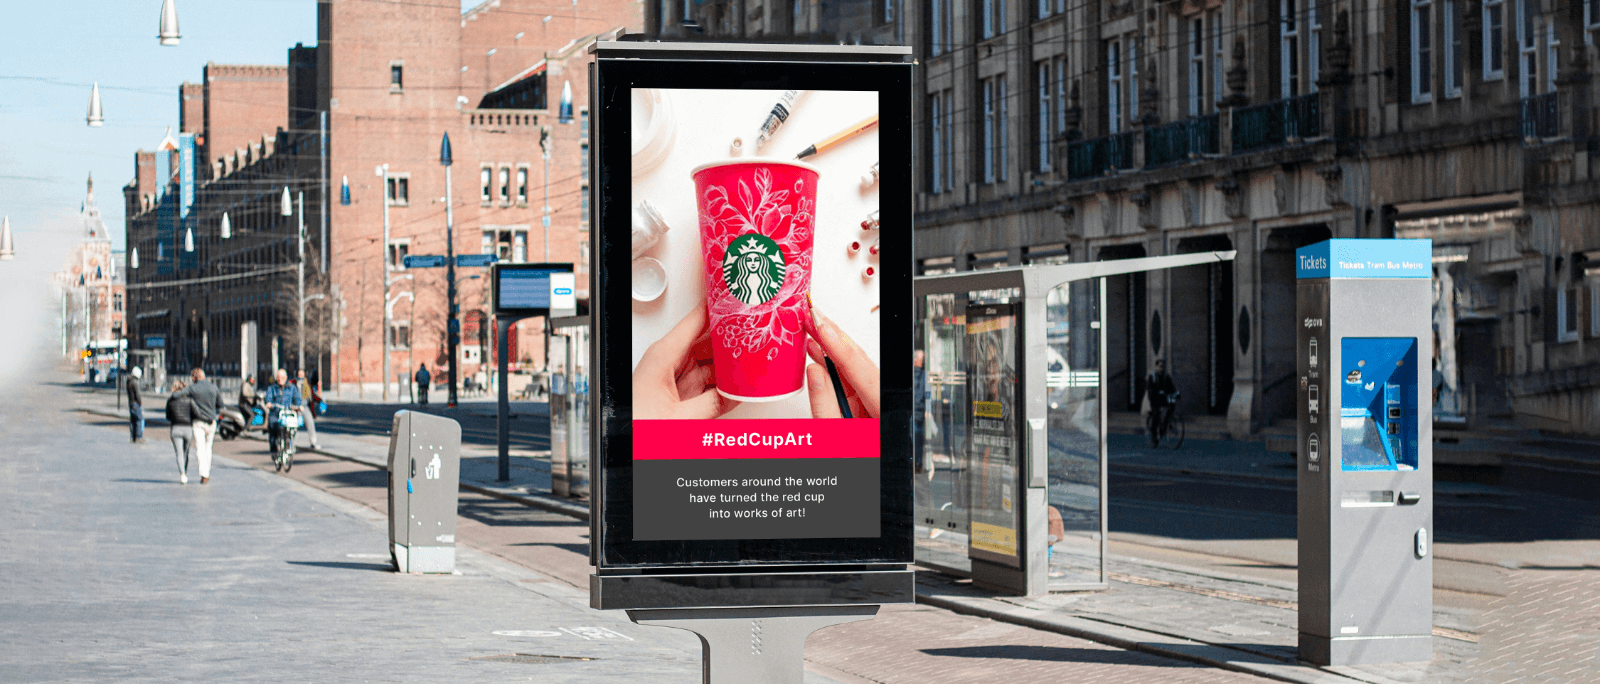 digital out of home advertisement